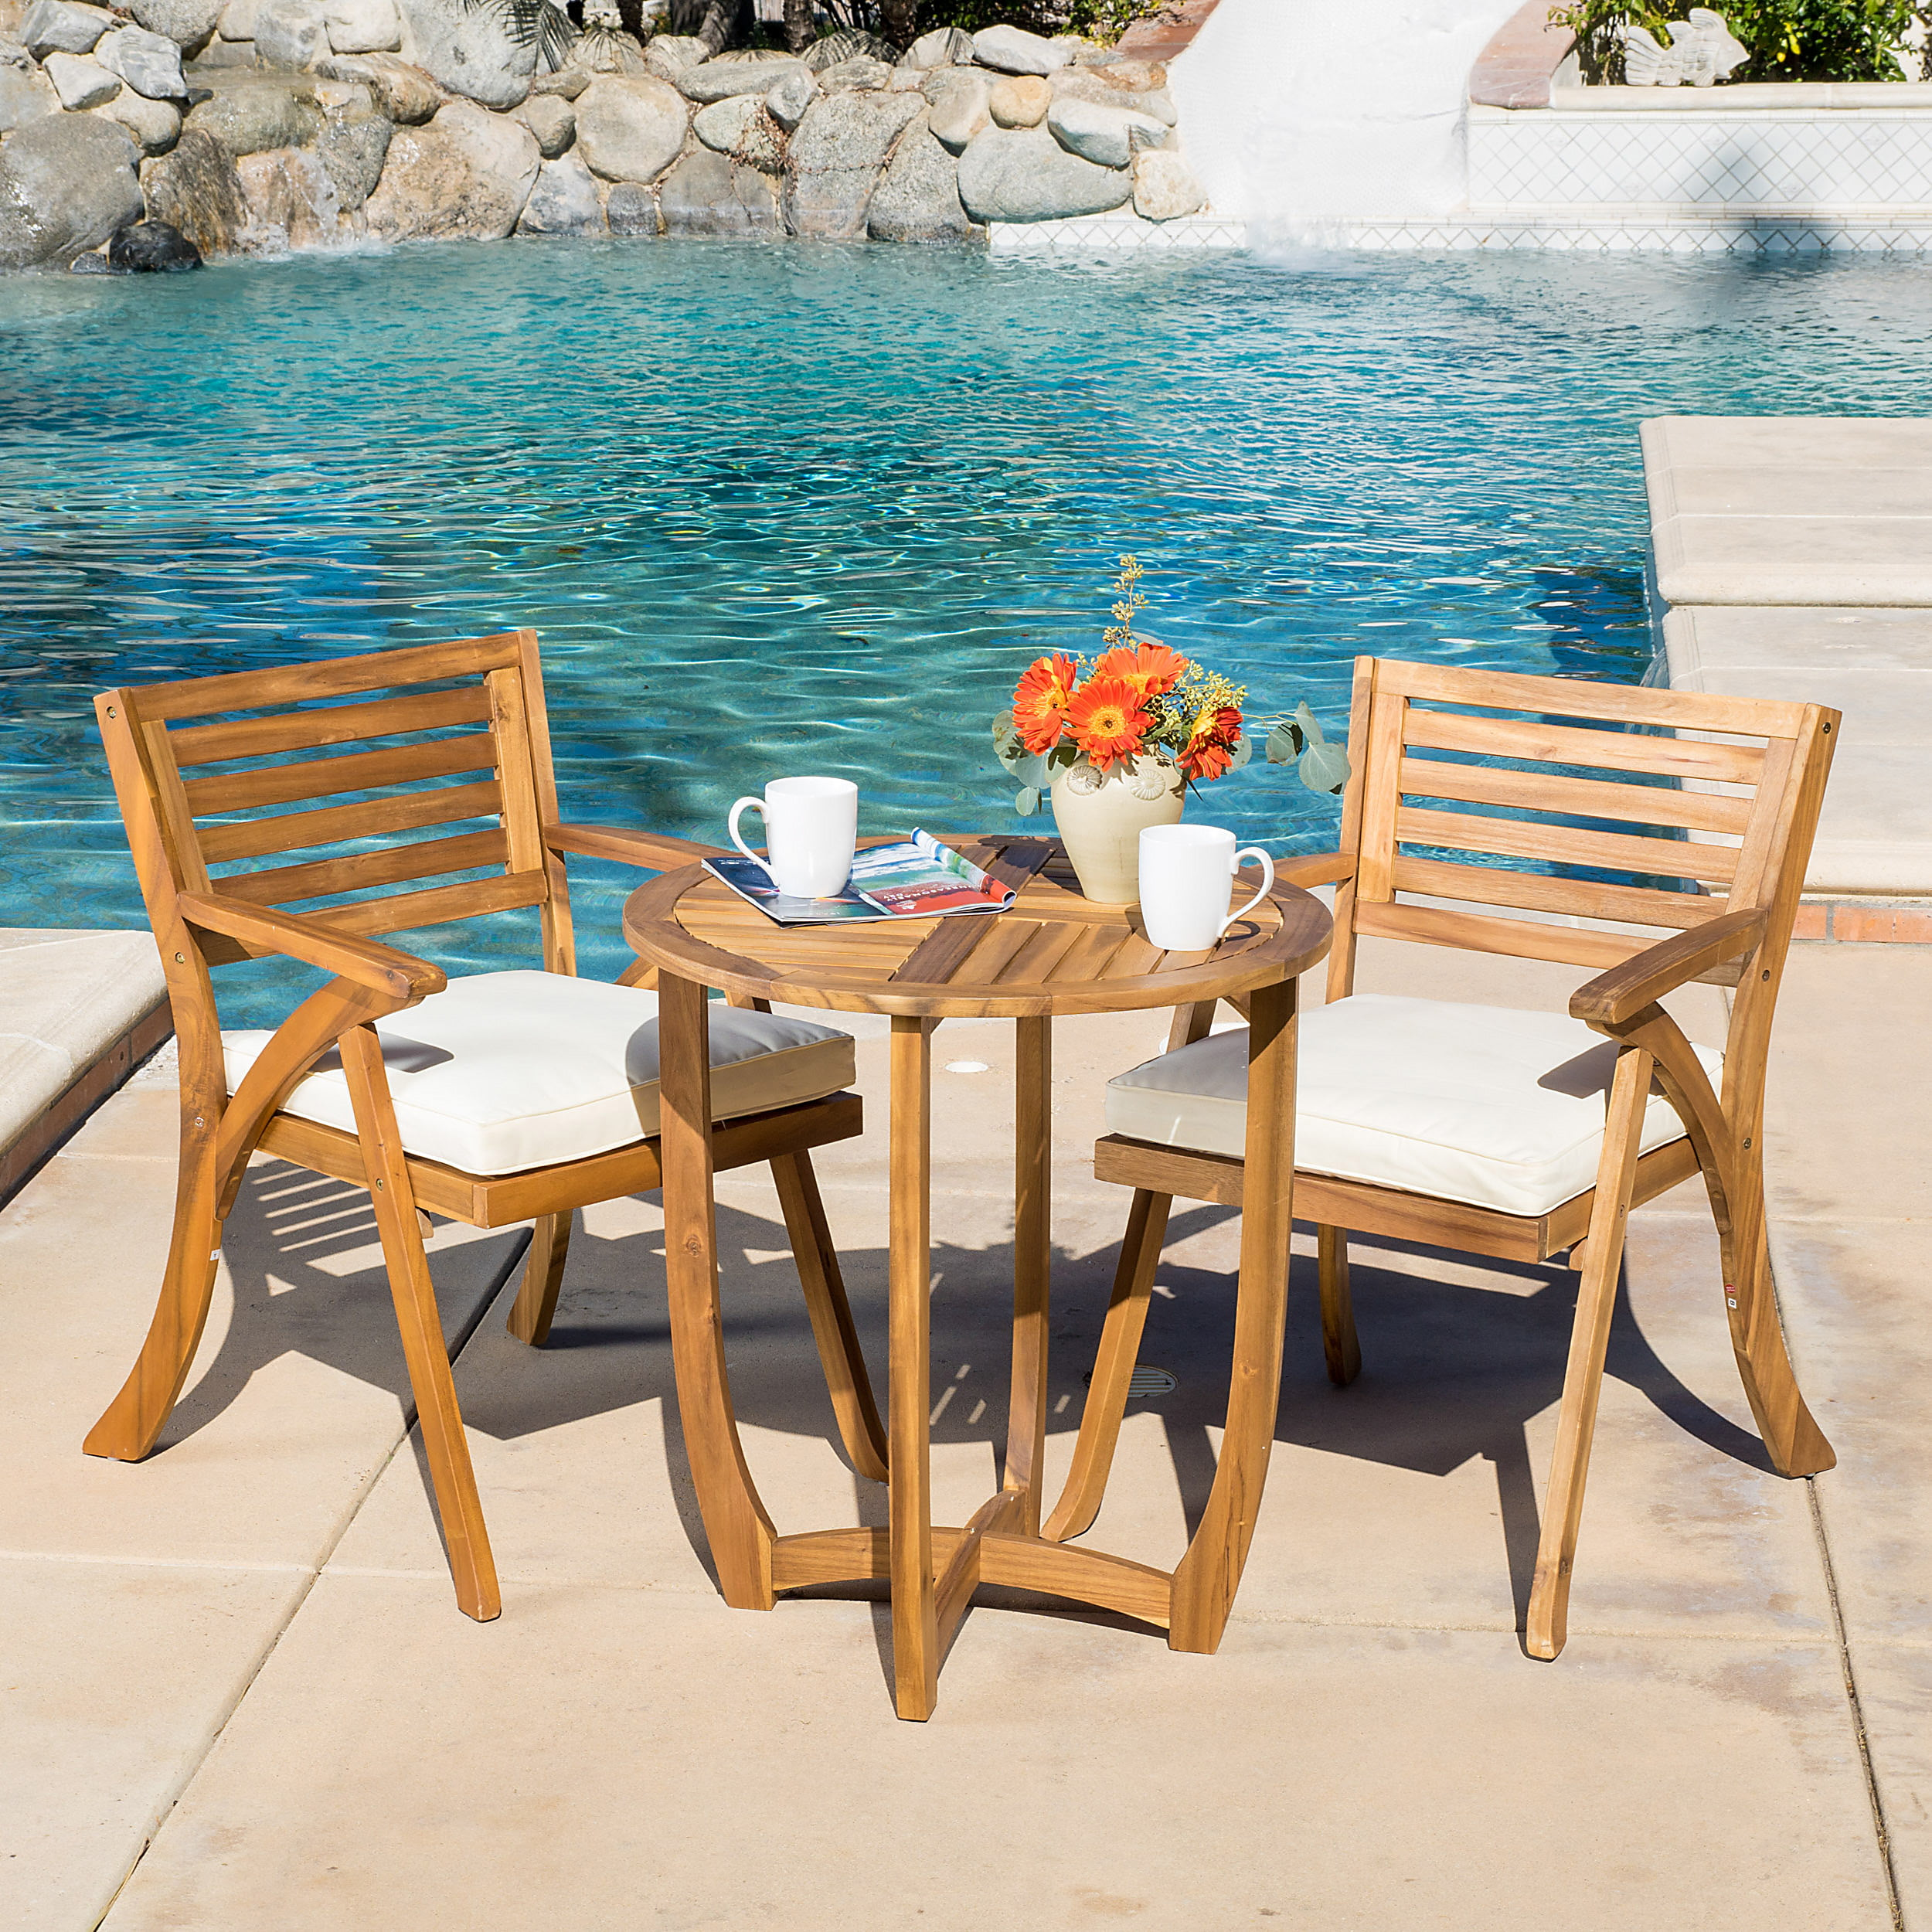 Esme Acacia Wood 3-Piece Outdoor Bistro Set with Cushions, Teak Finish by Noble House